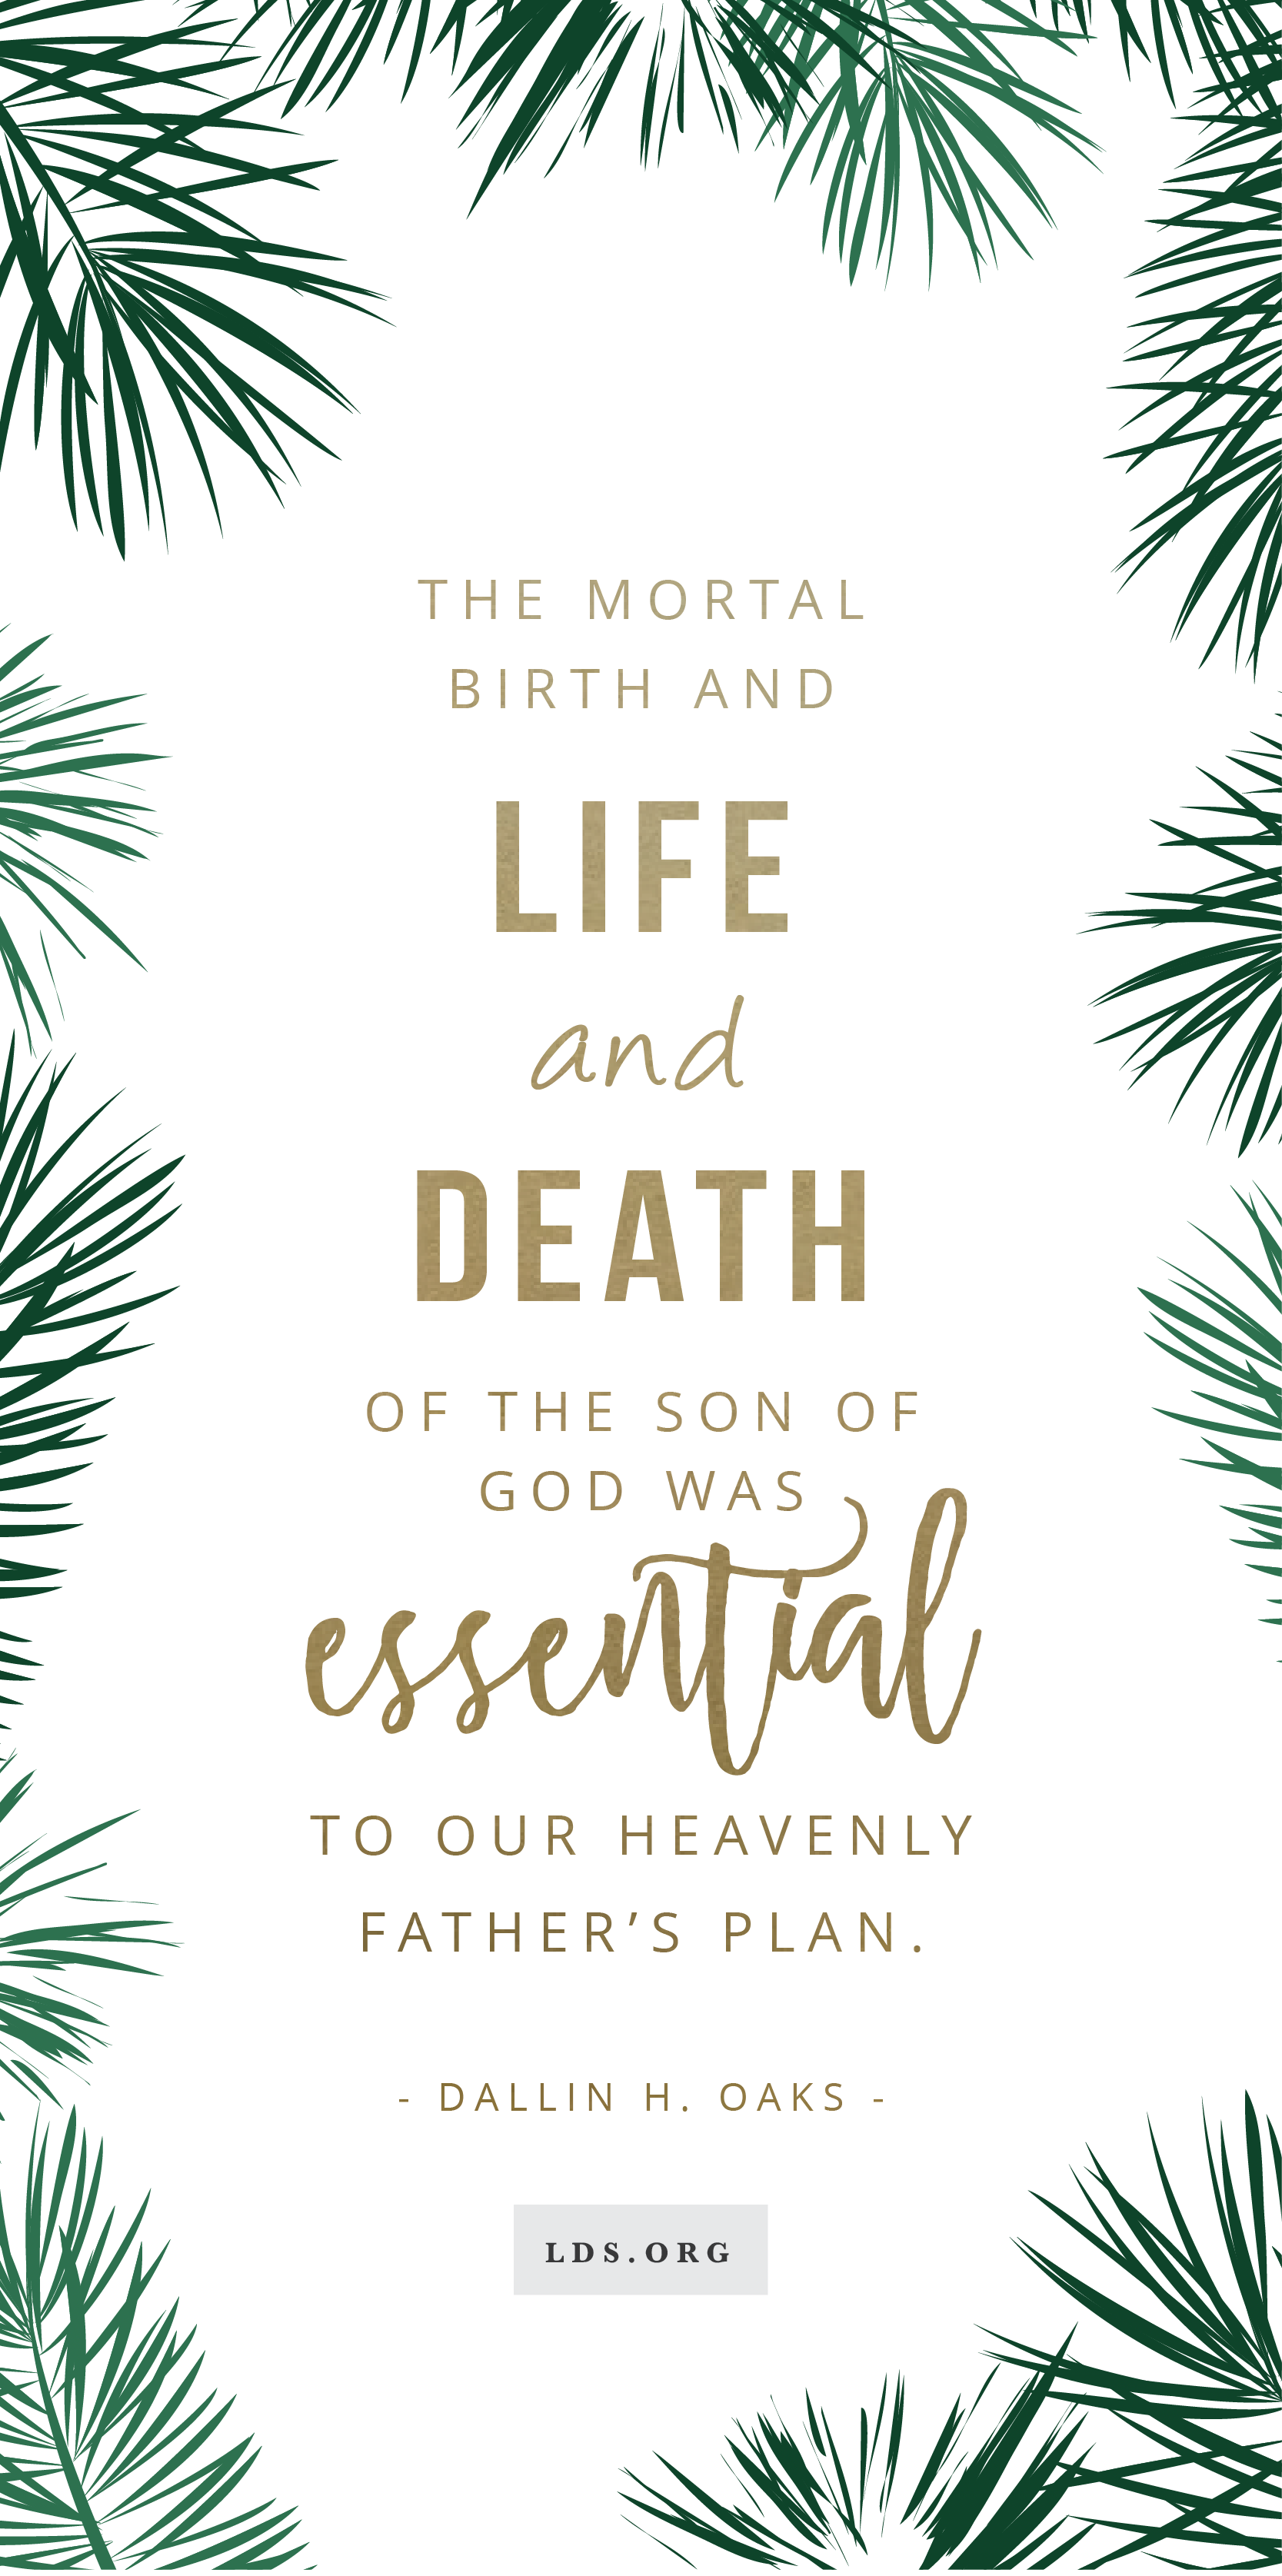 Lds Christmas Quotes.New Lds Christmas Quotes Best Christmas Quotes 2018